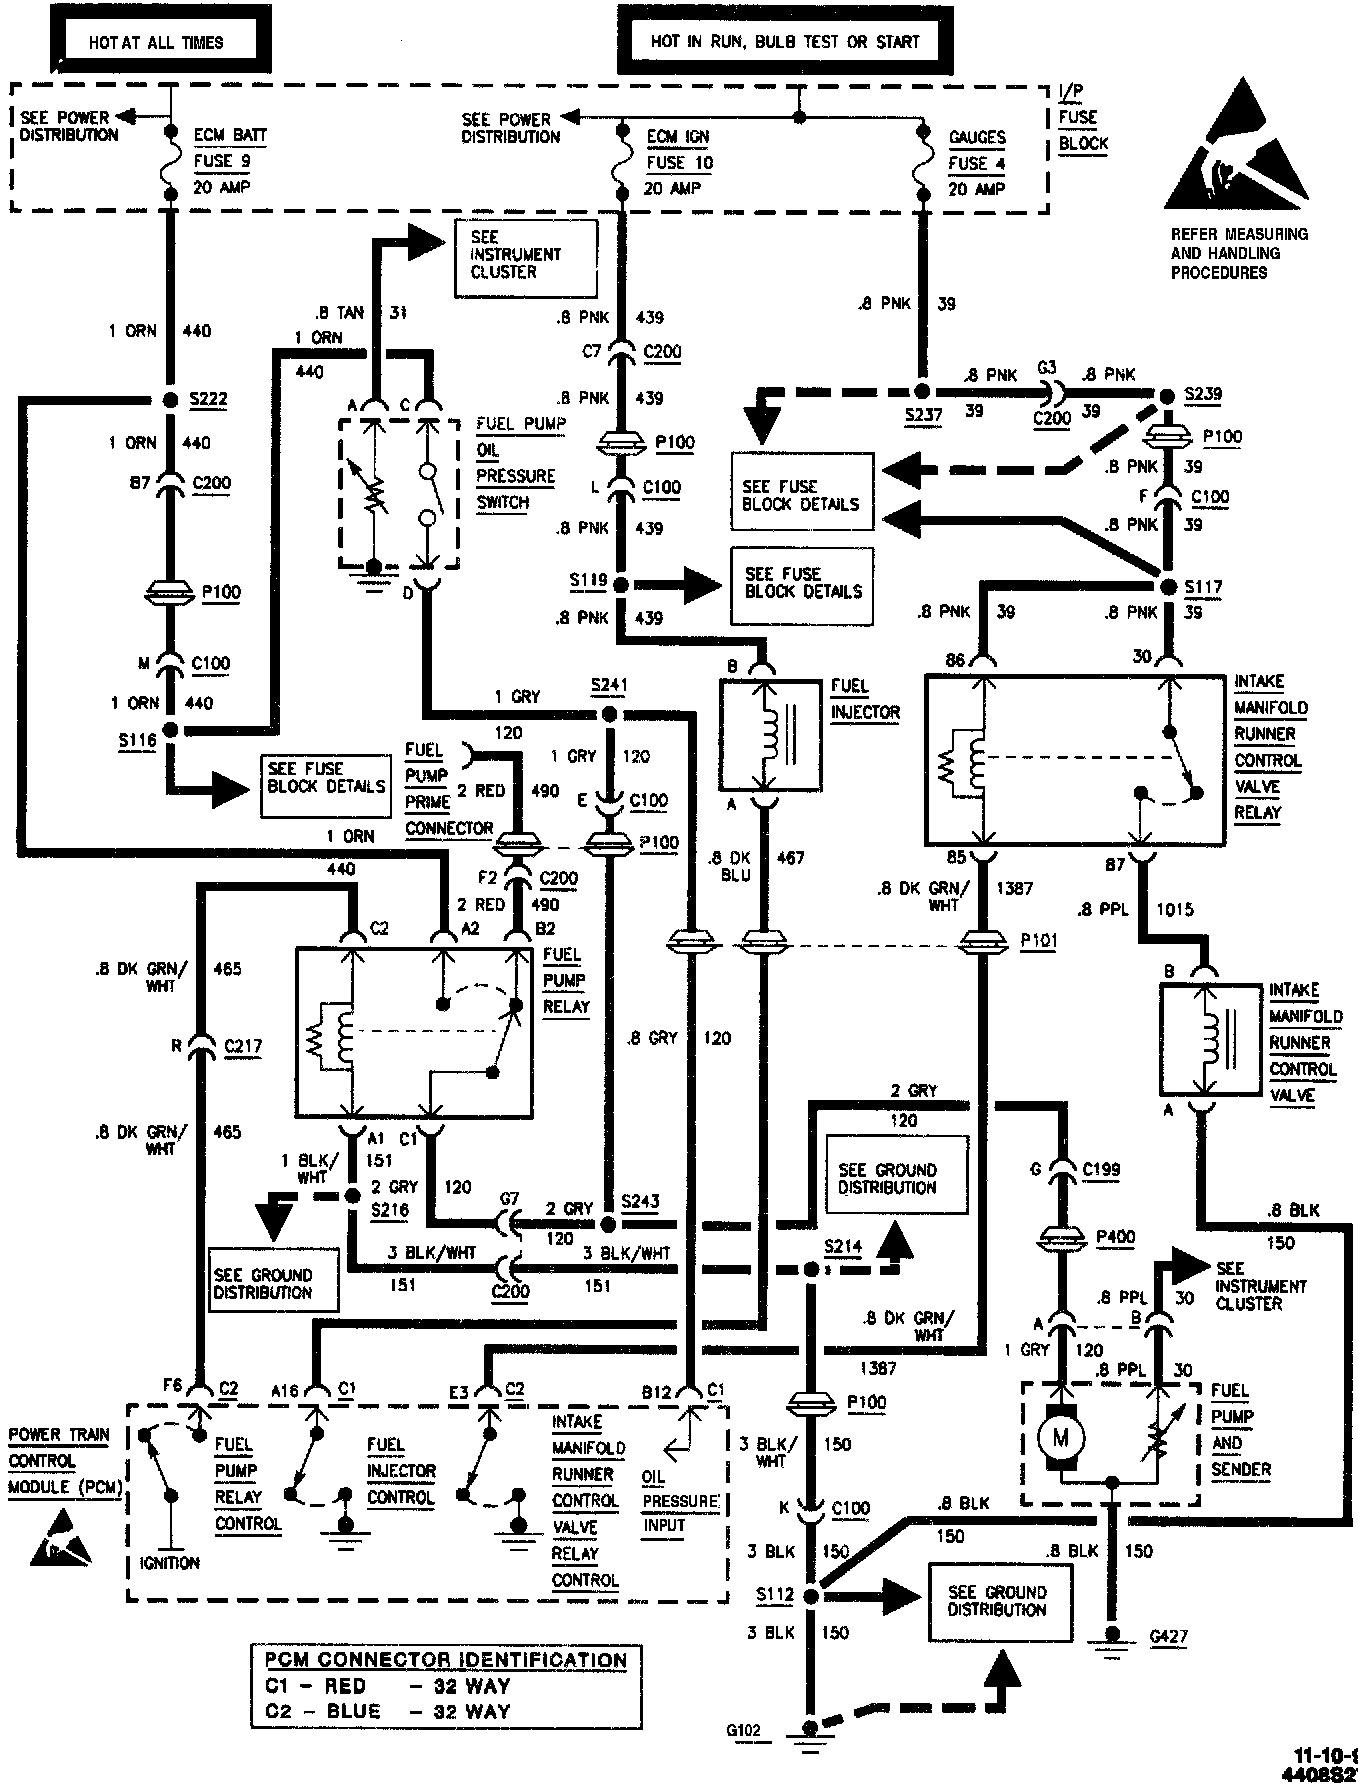 97 Chevy Tahoe Wiring - 2005 Saturn Ion Radio Wiring Diagram -  delco-electronics.tukune.jeanjaures37.fr | 97 Tahoe Wiring Schematic |  | Wiring Diagram Resource